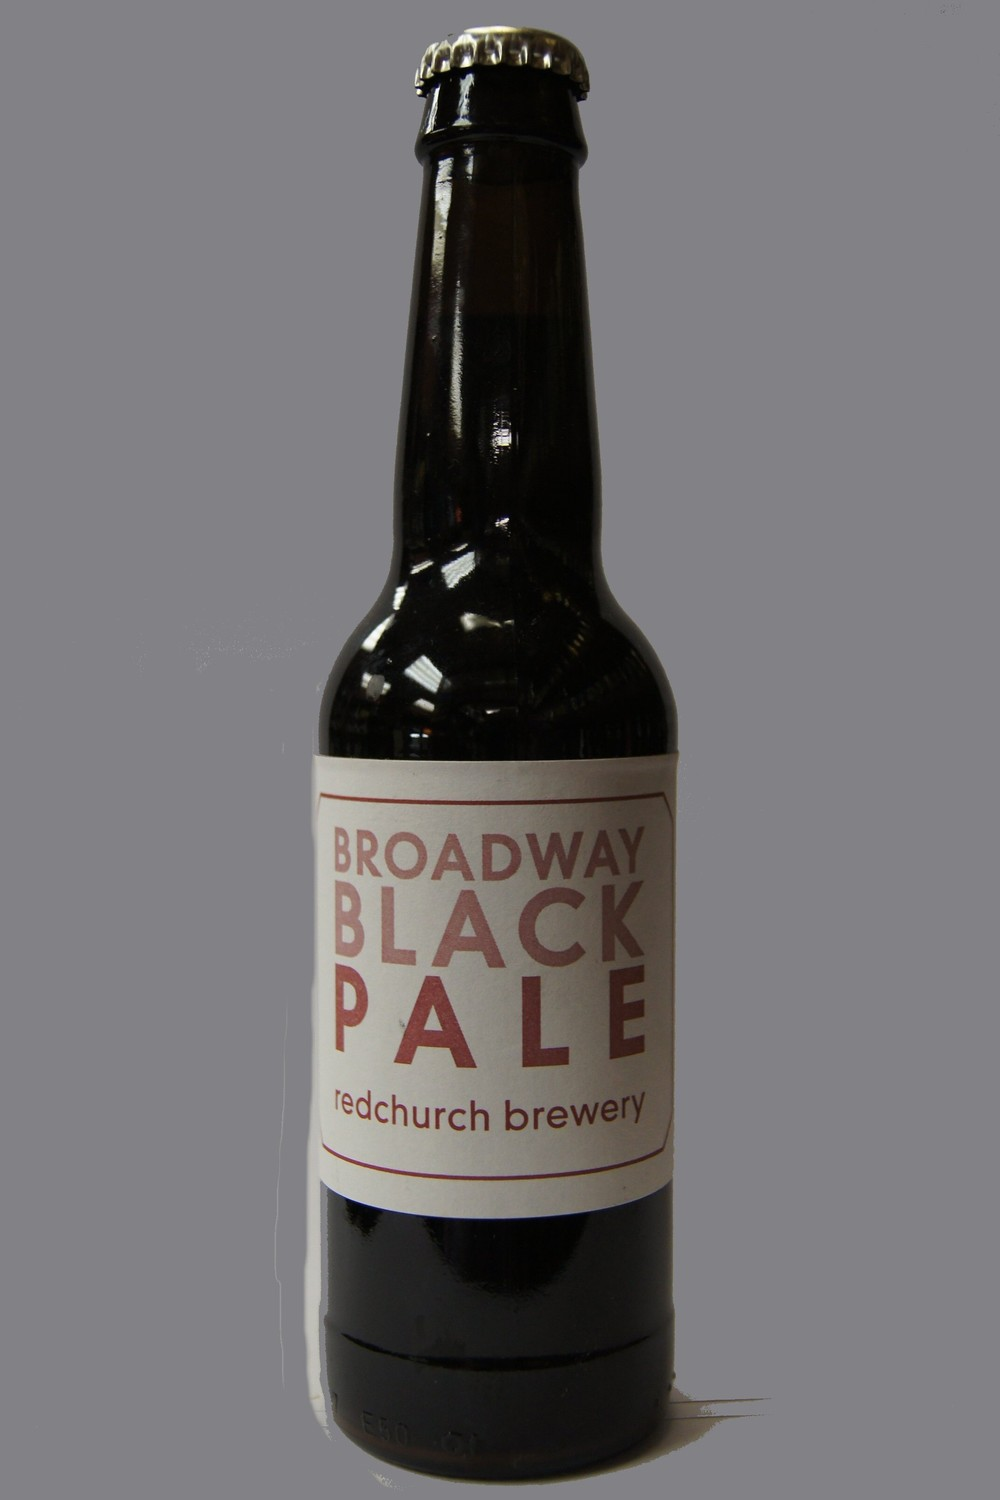 RED CHURCH BREWERY-Broadway Black Pale.jpg